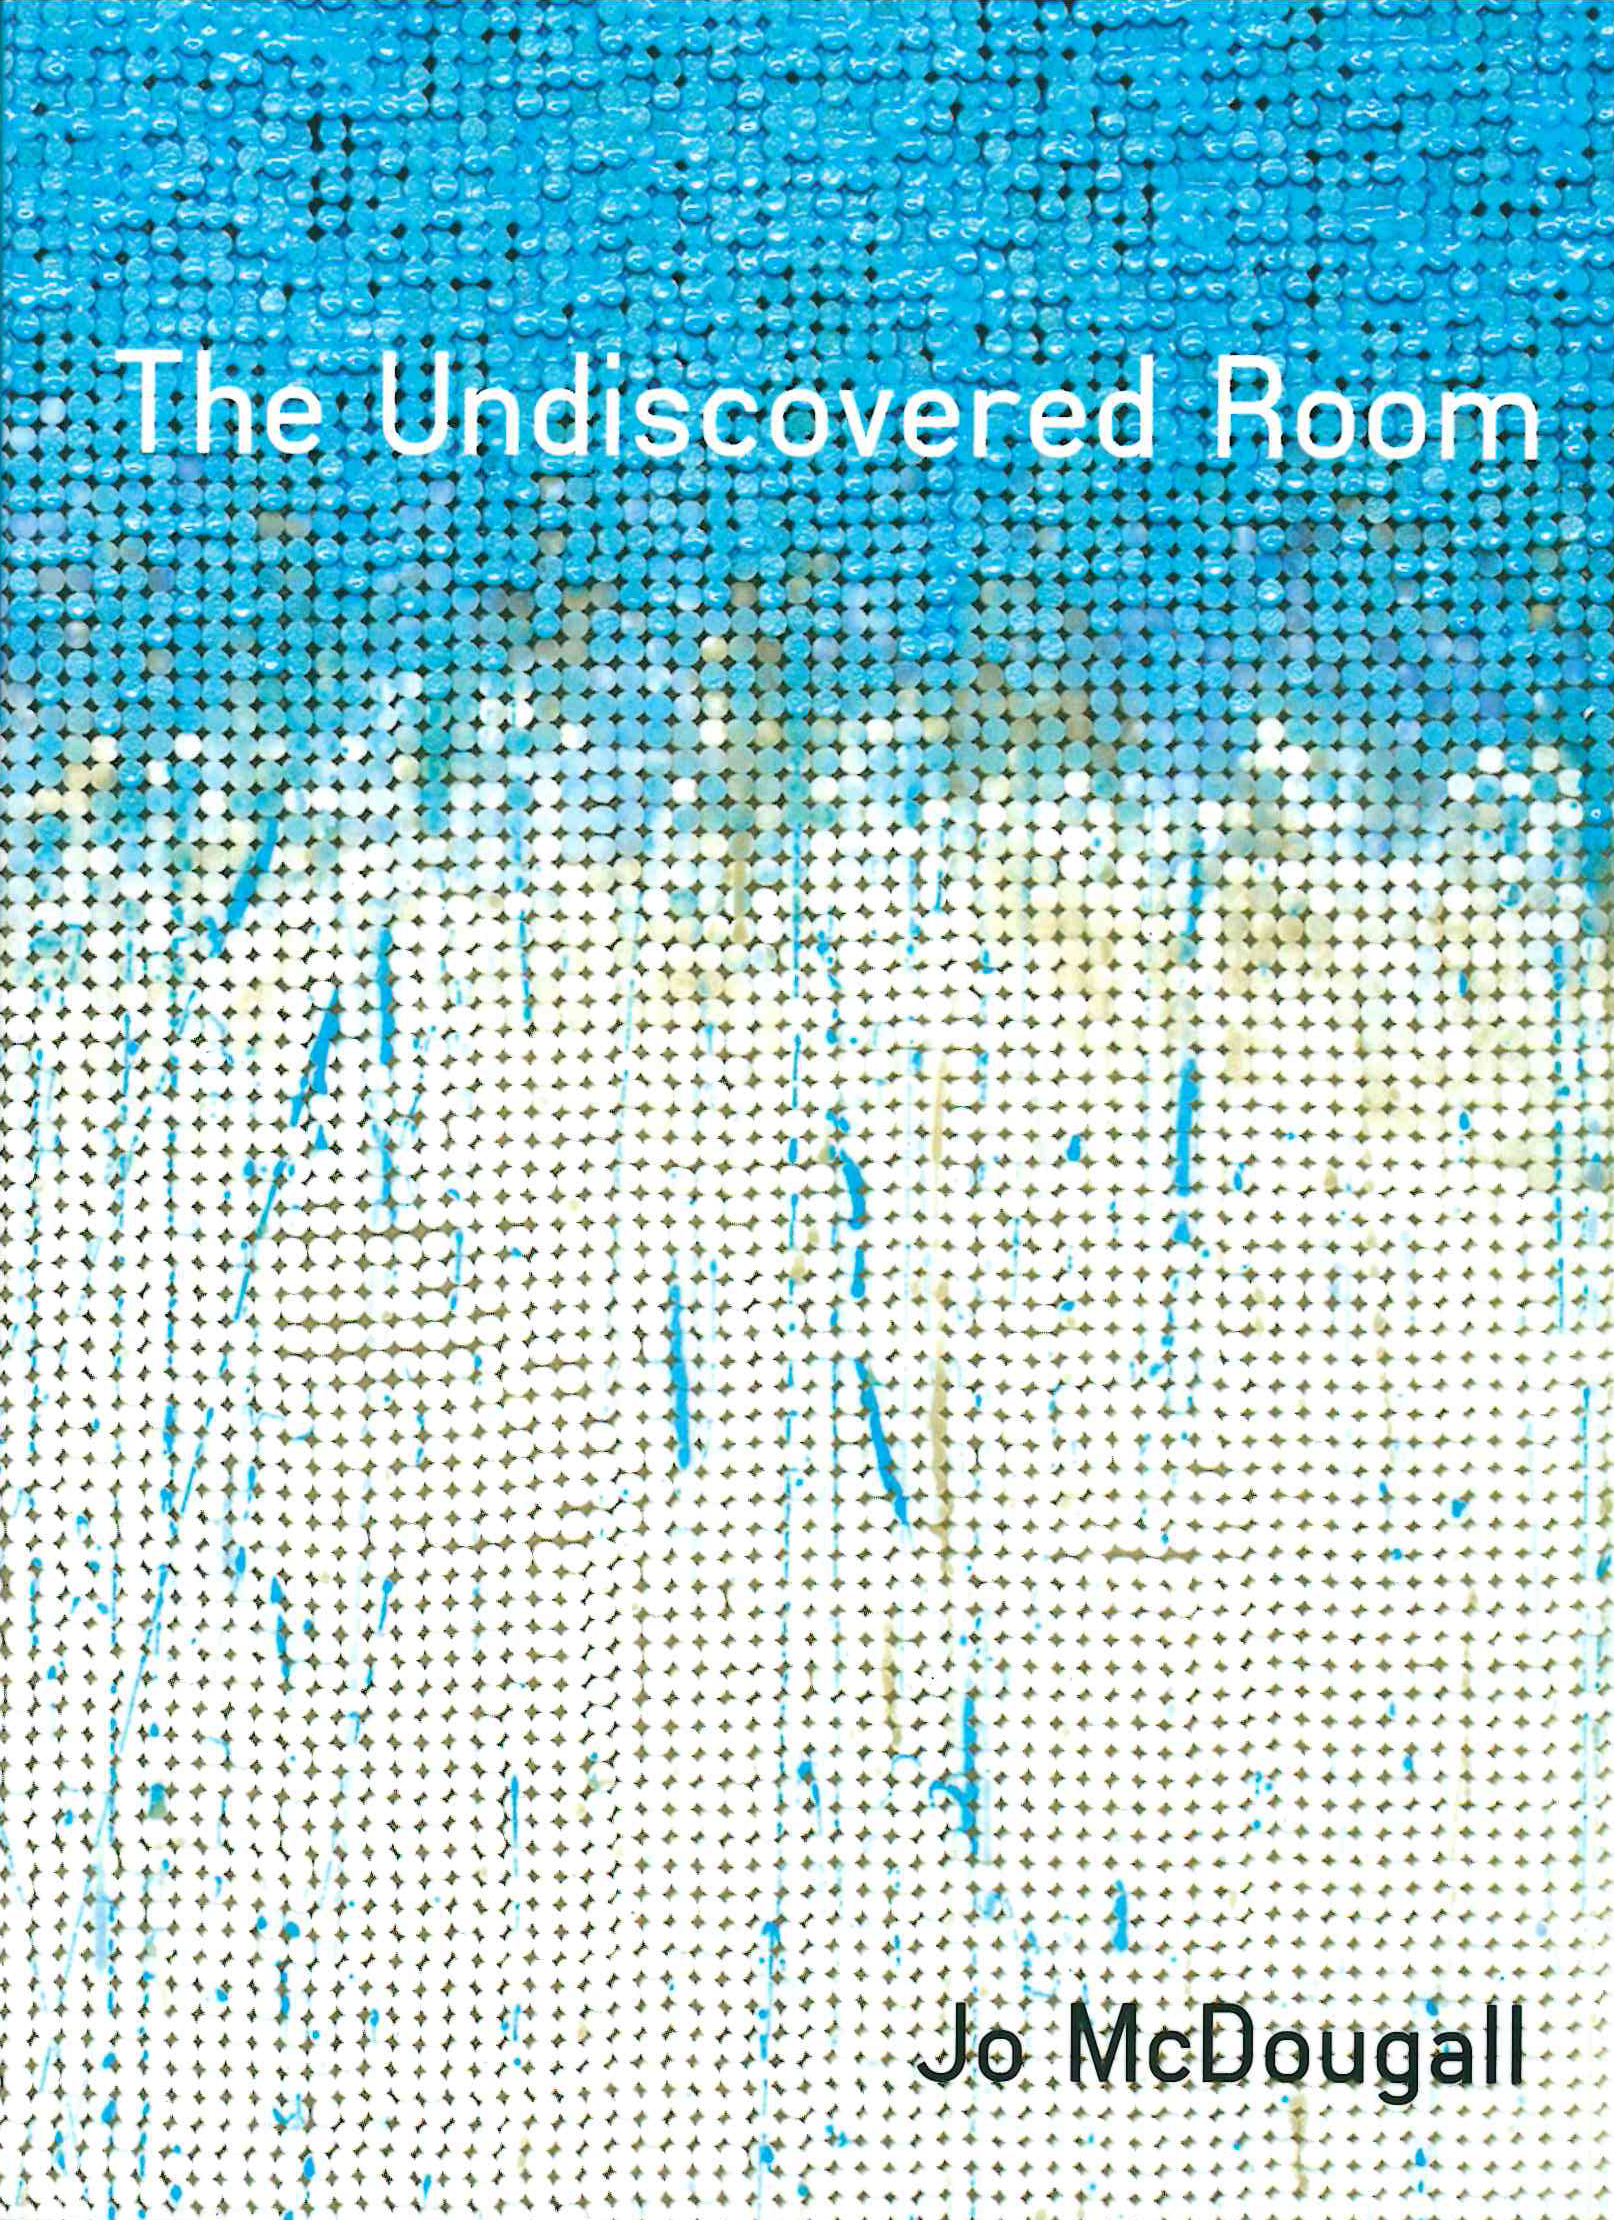 The Undiscovered Room Jo Mcdougall